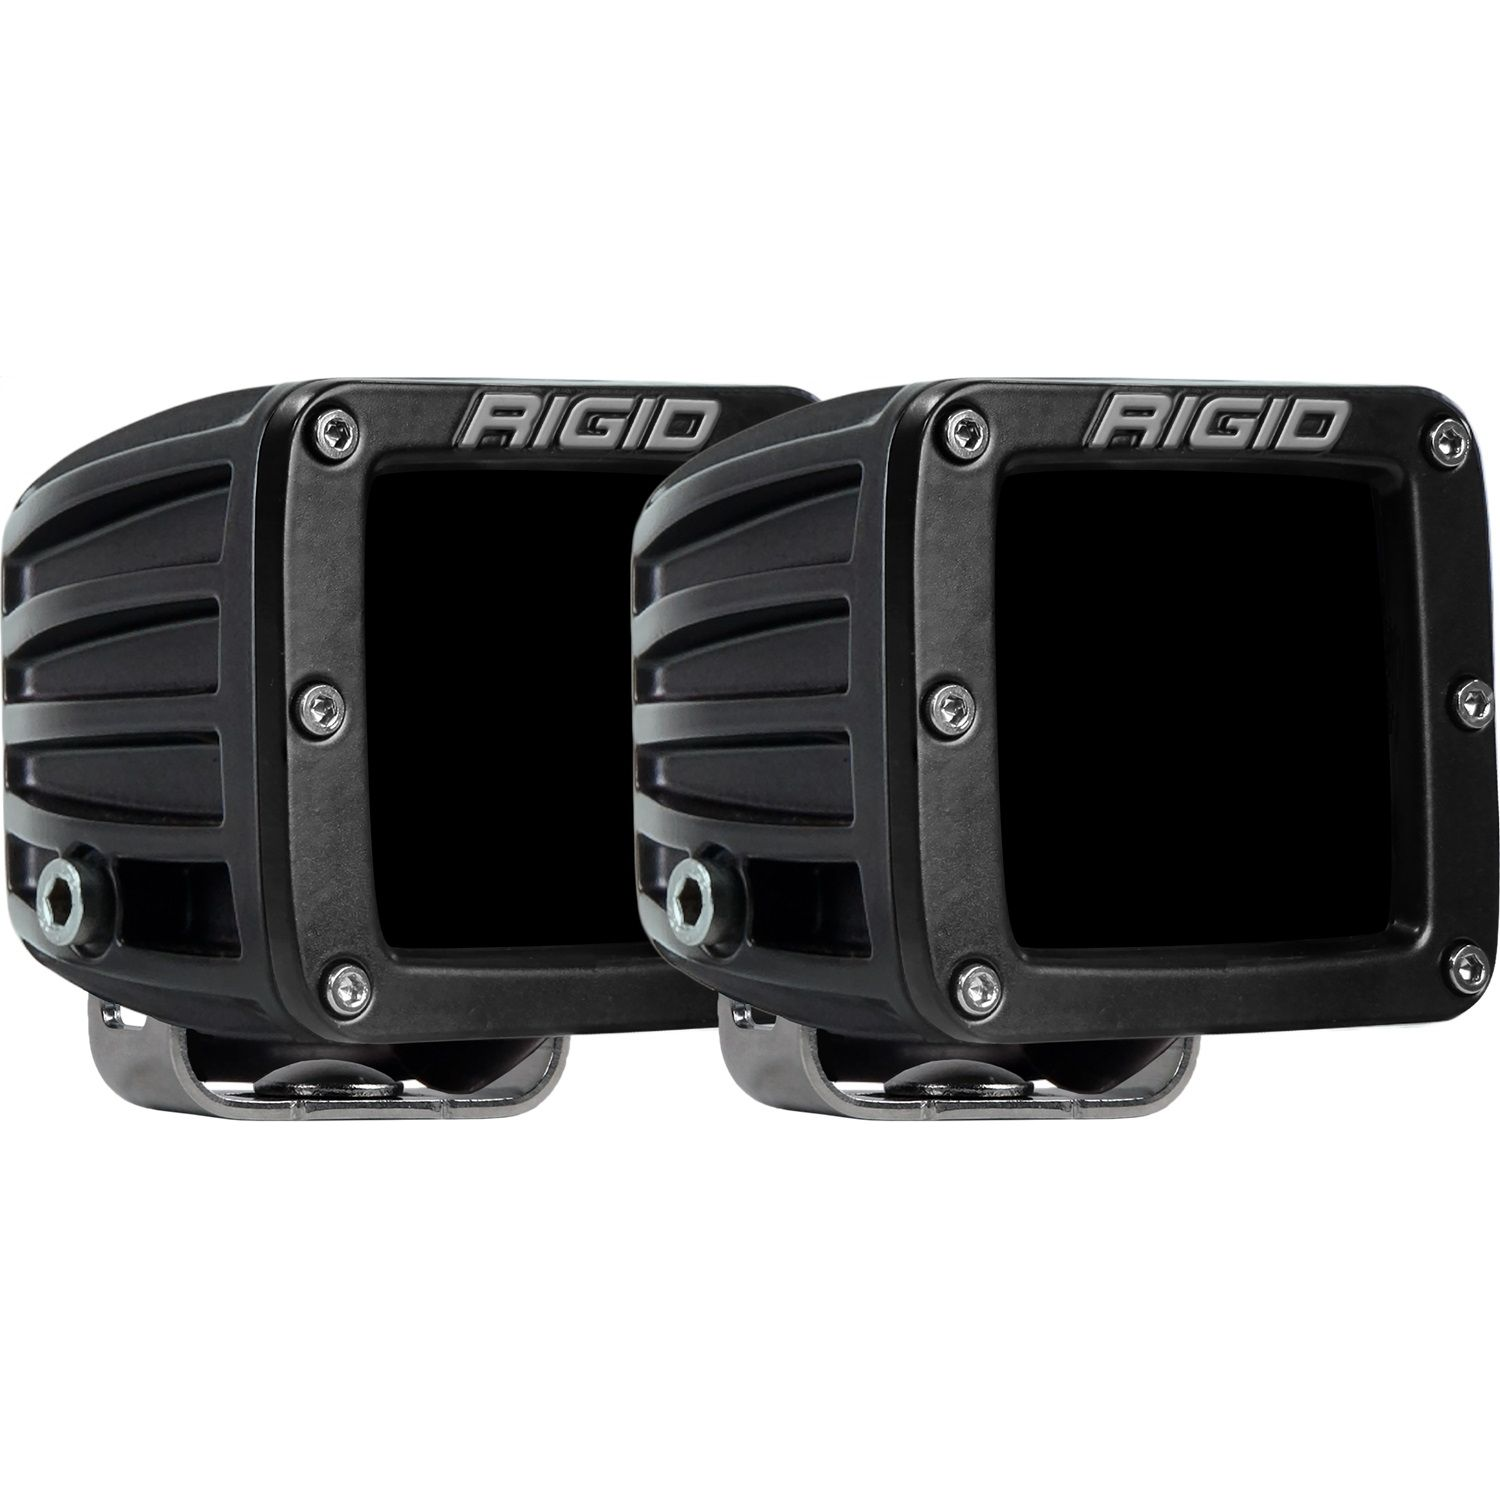 RIGID D-Series PRO LED Light, Driving Optic, Infrared, Surface Mount, Pair